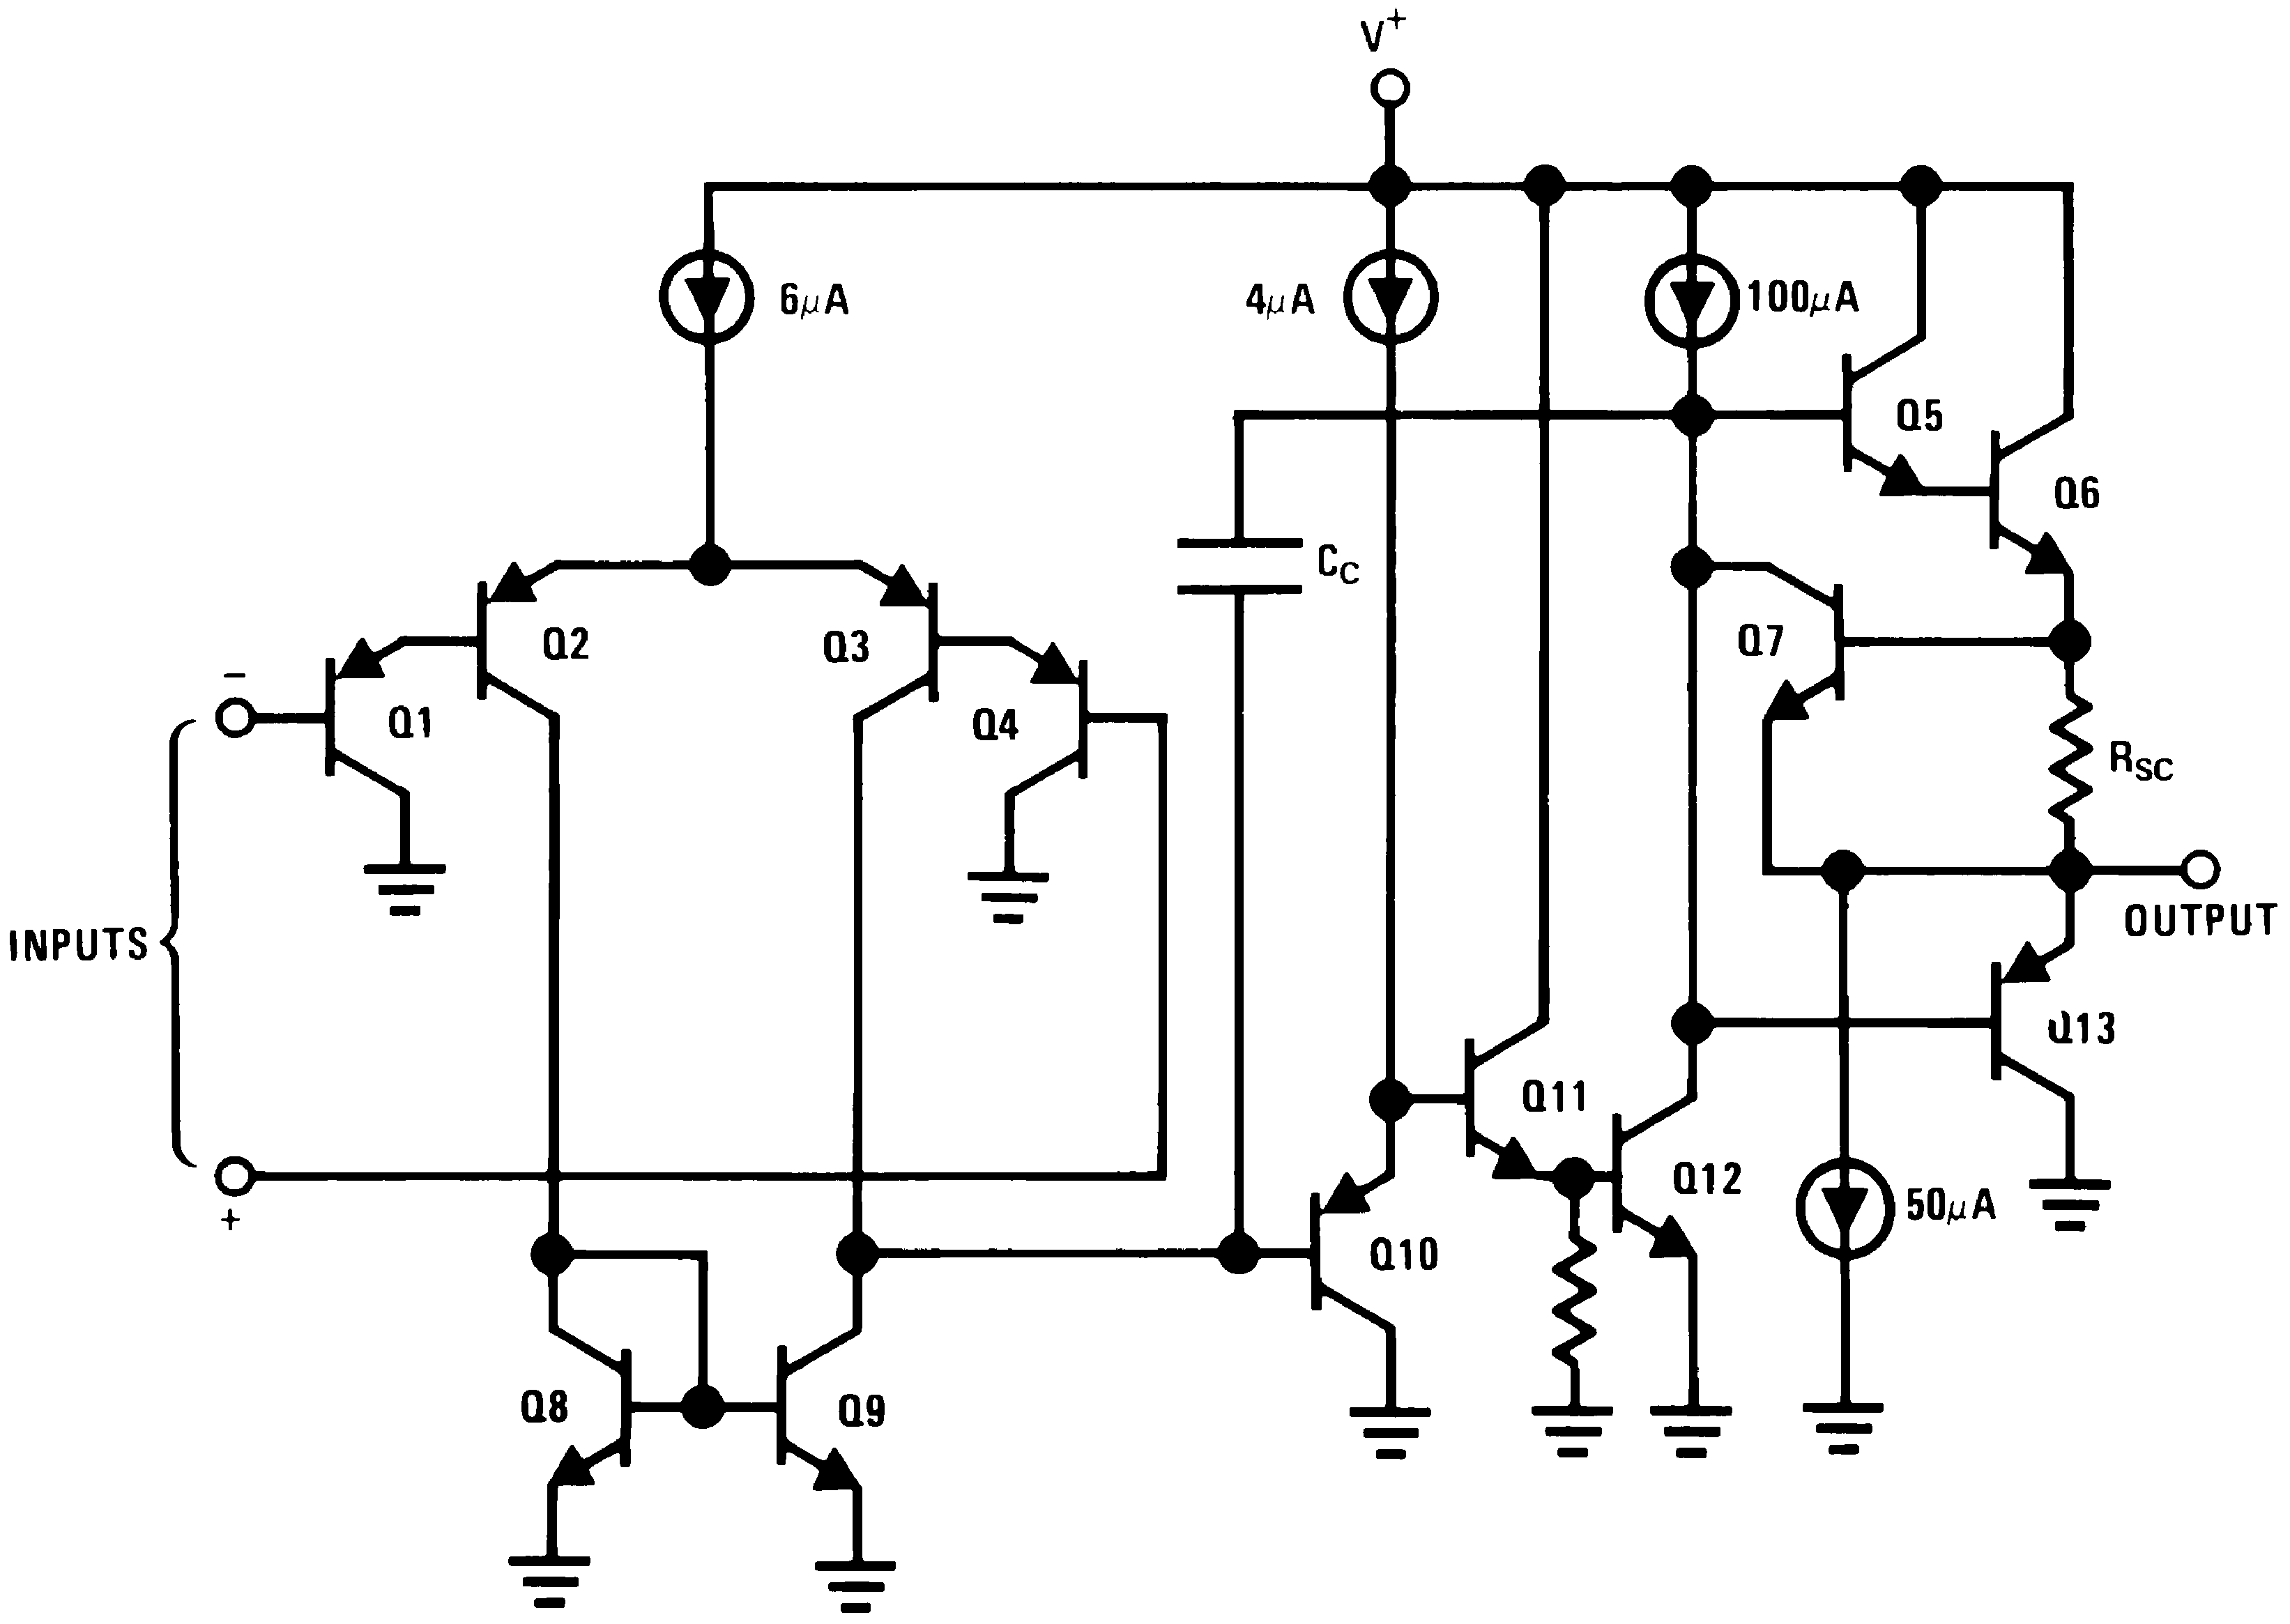 Lm2902 n low power quad operational amplifier tij 72 functional block diagram pooptronica Images